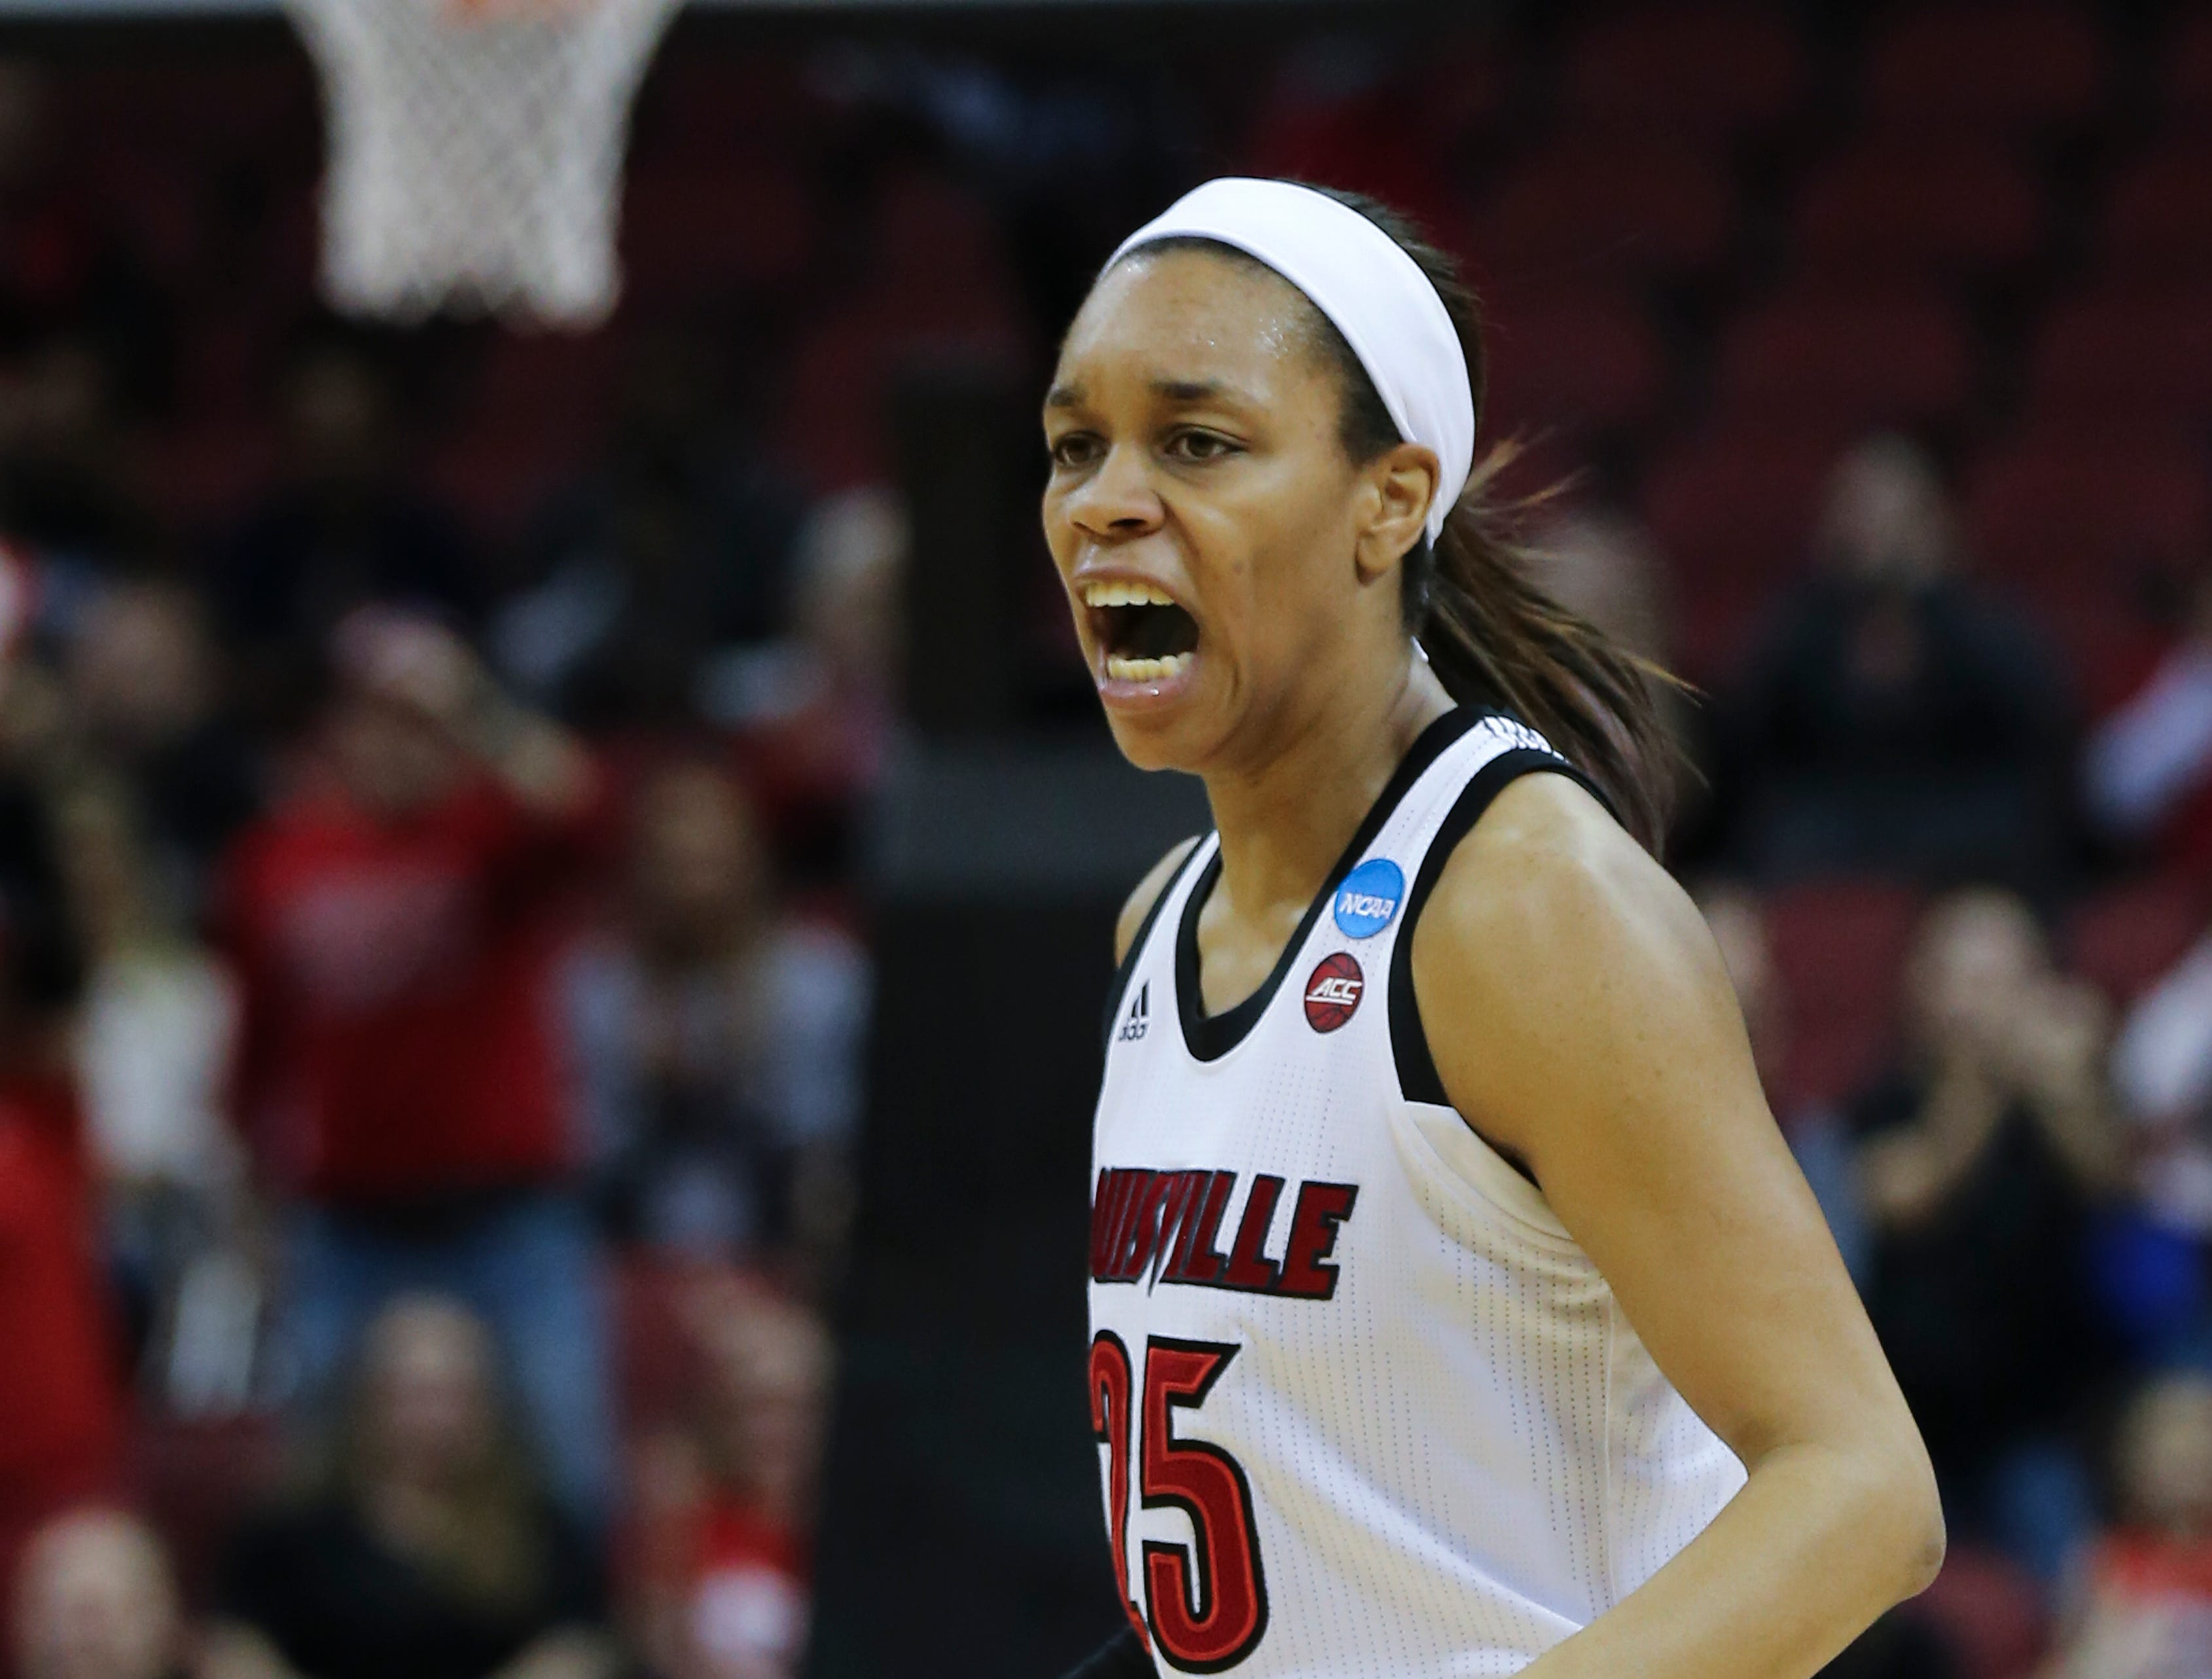 U of L's Asia Durr (25) reacts after hitting a three-point shot against against Michigan during the second round of their NCAA Tournament game at the Yum Center.Mar. 24, 2019